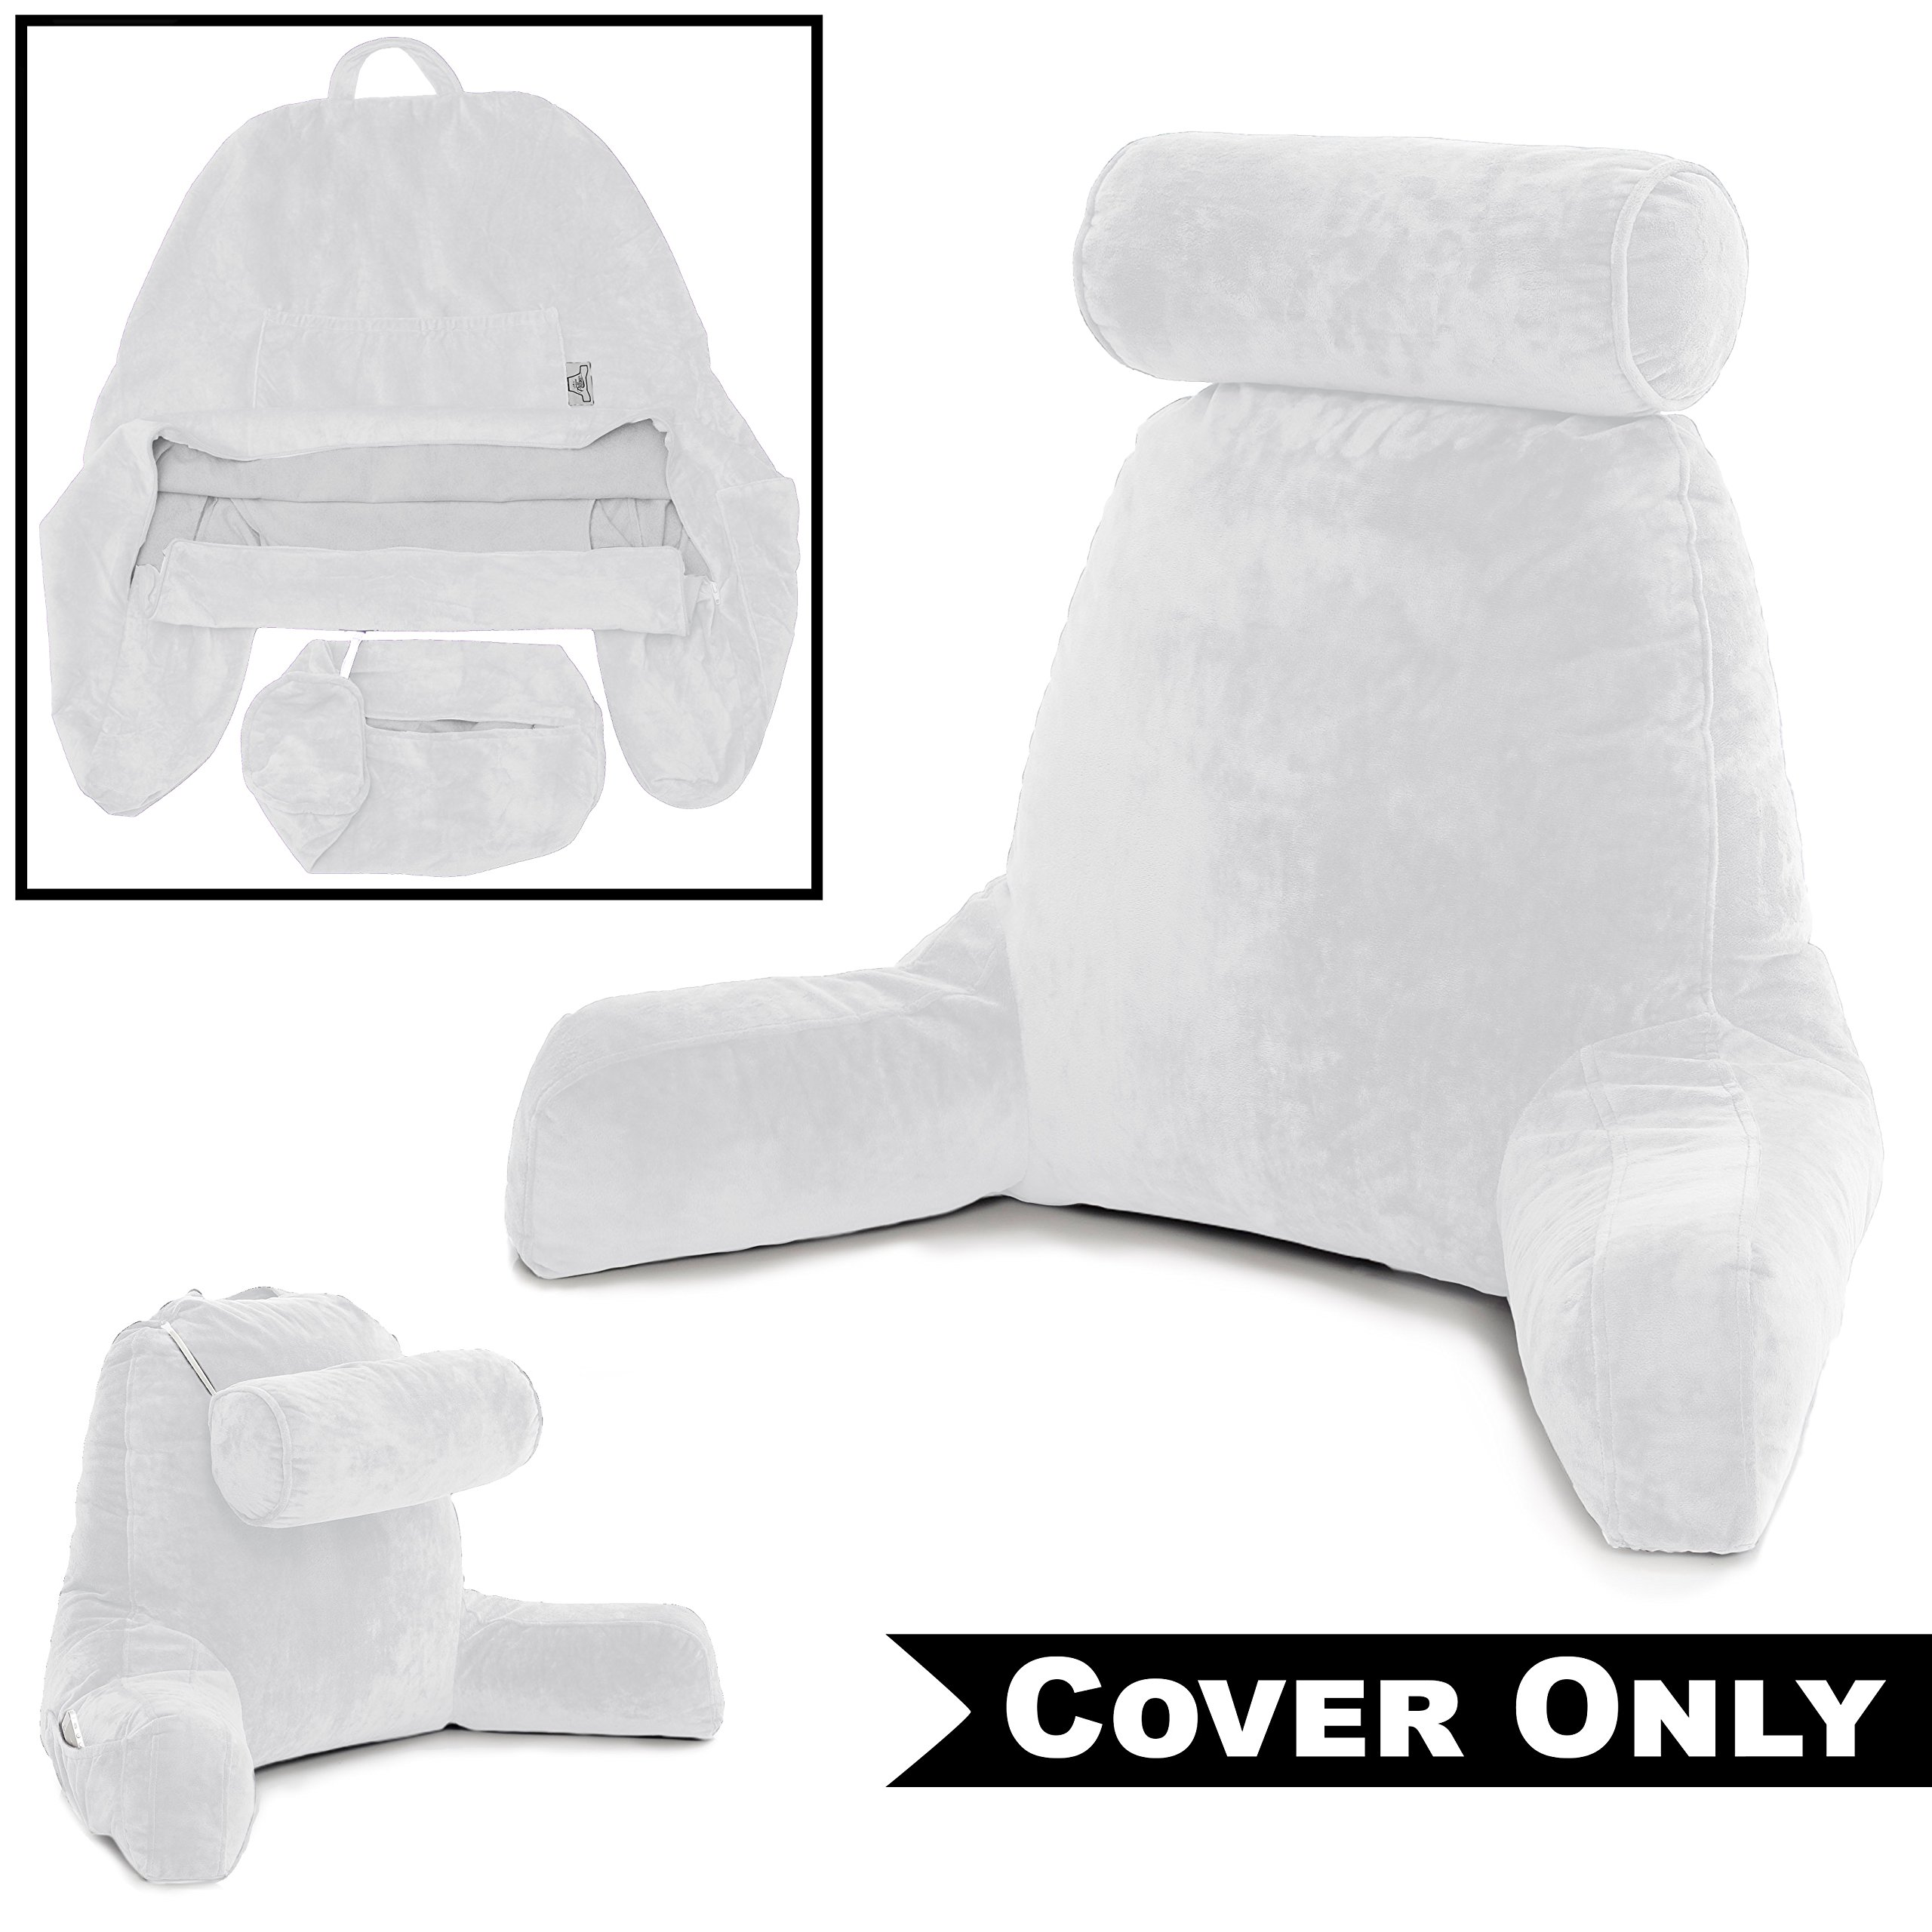 Husband Pillow White COVER ONLY - For the Bedrest Cover Set - Support Bed Backrest Covers, Micro Plush Cover Including Detachable Neck Roll Pillow Cover